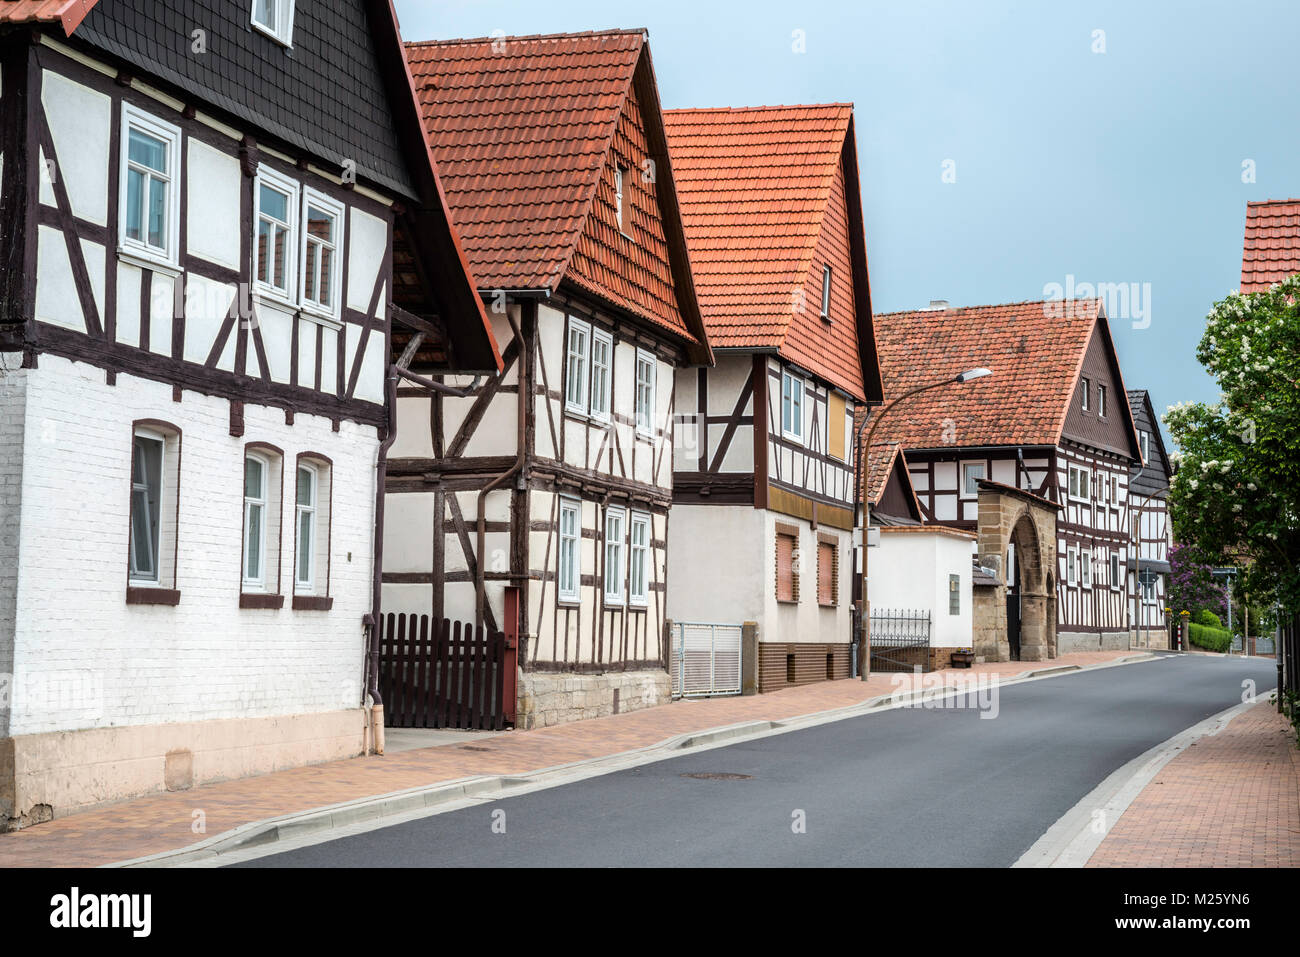 Half-timbered houses at Rimbachstrasse in Netra, Ringgau community, Hessen, Germany - Stock Image